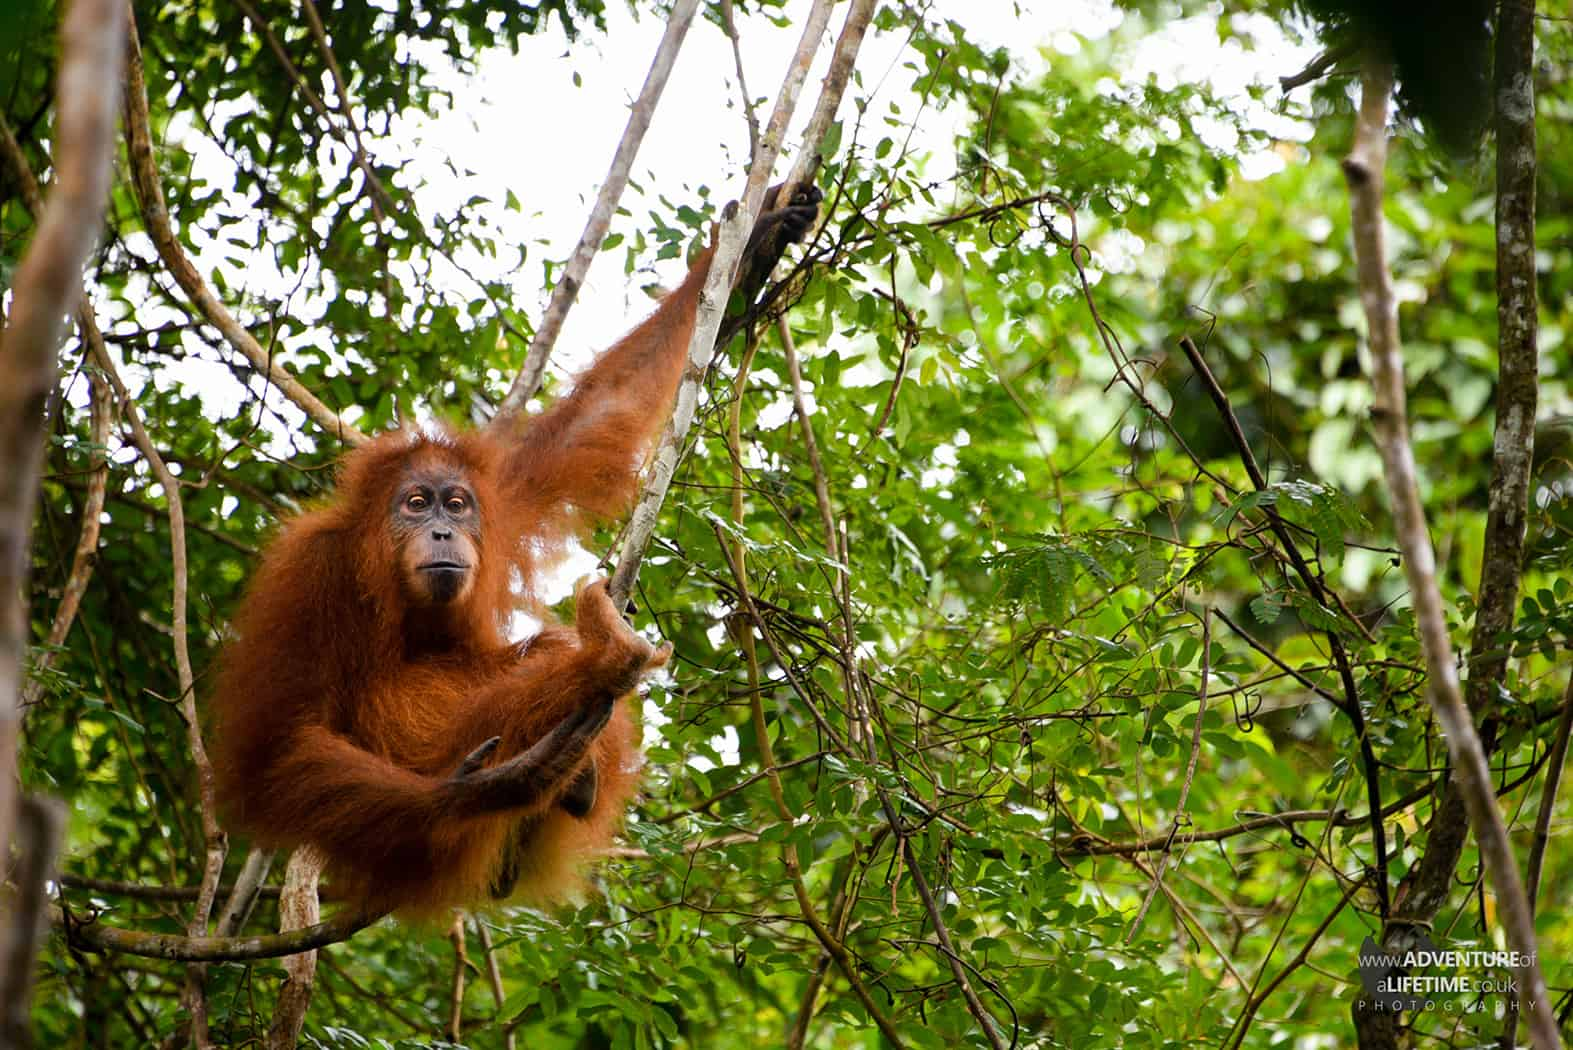 Young Sumatran Orangutan sitting in tree